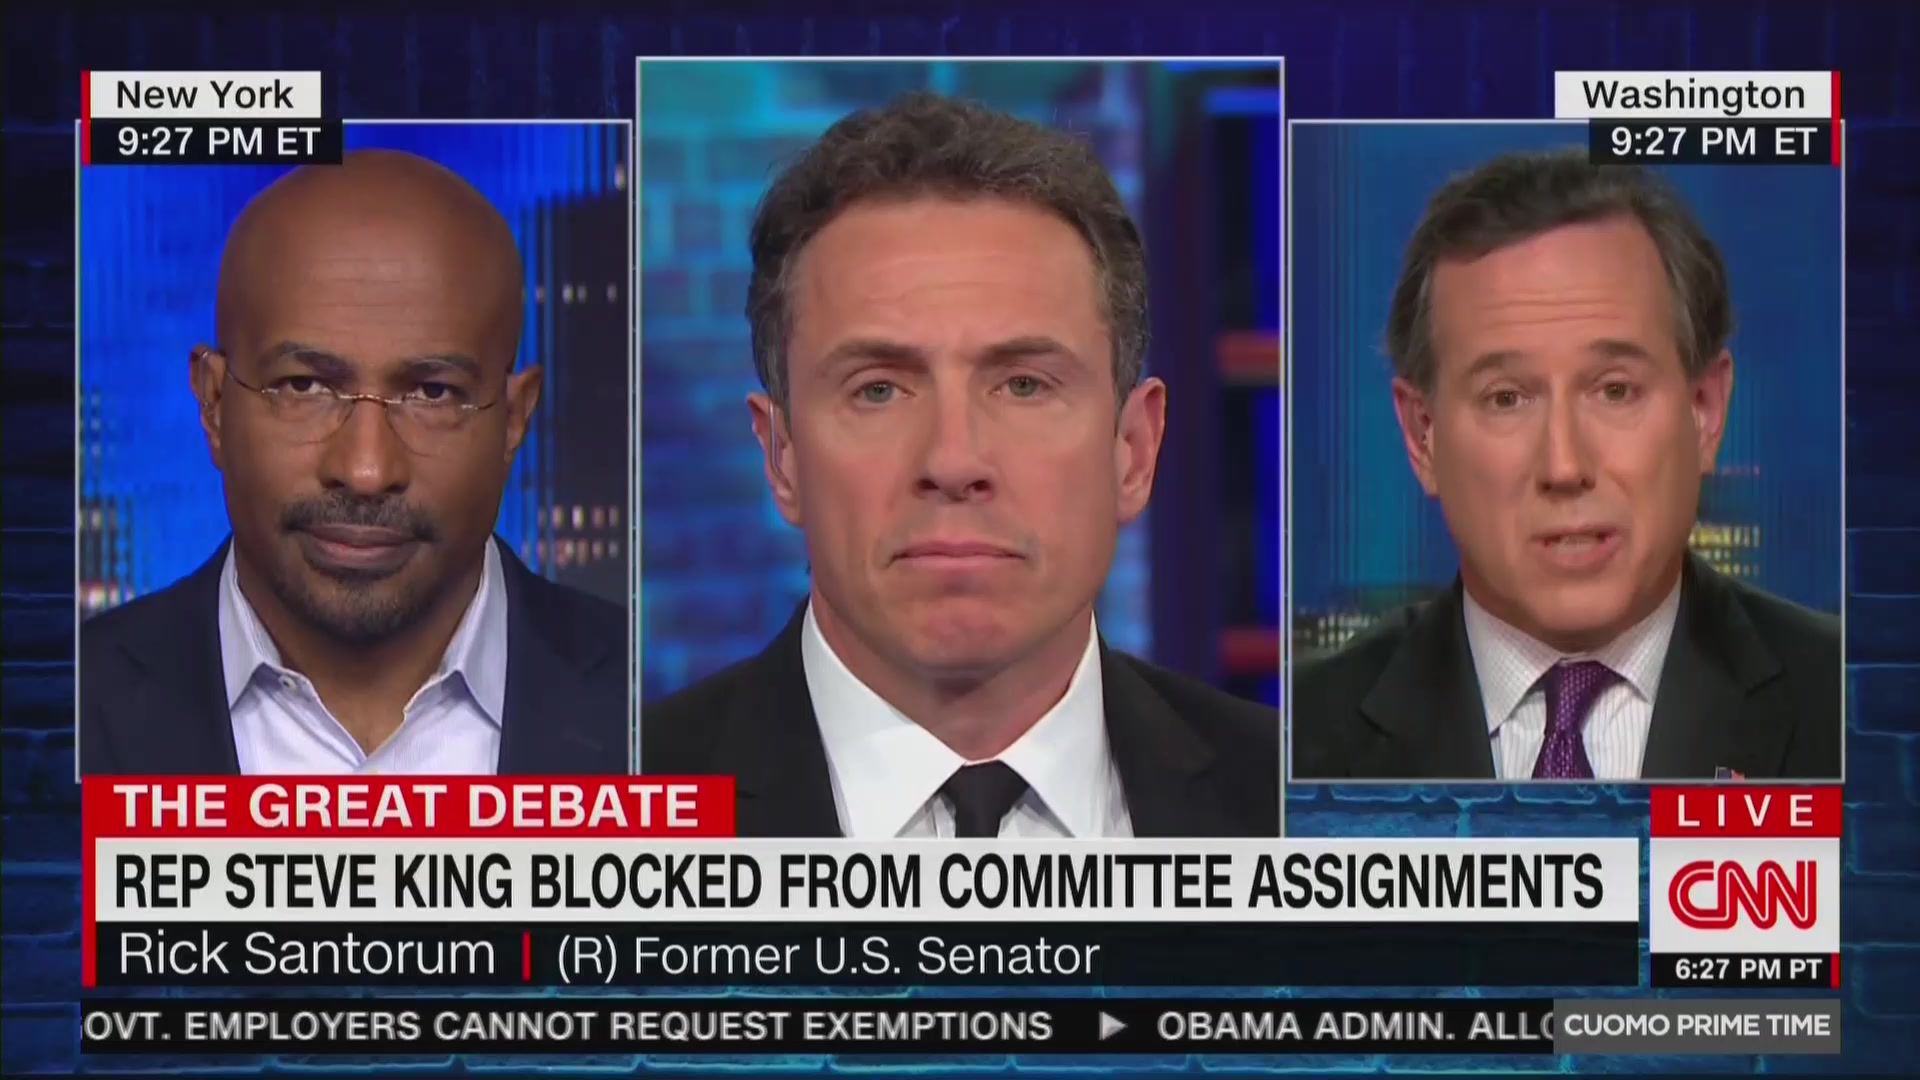 Rick Santorum's Reaction To Steve King: GOP Has 'Better Record On Race Relations' Than Democrats